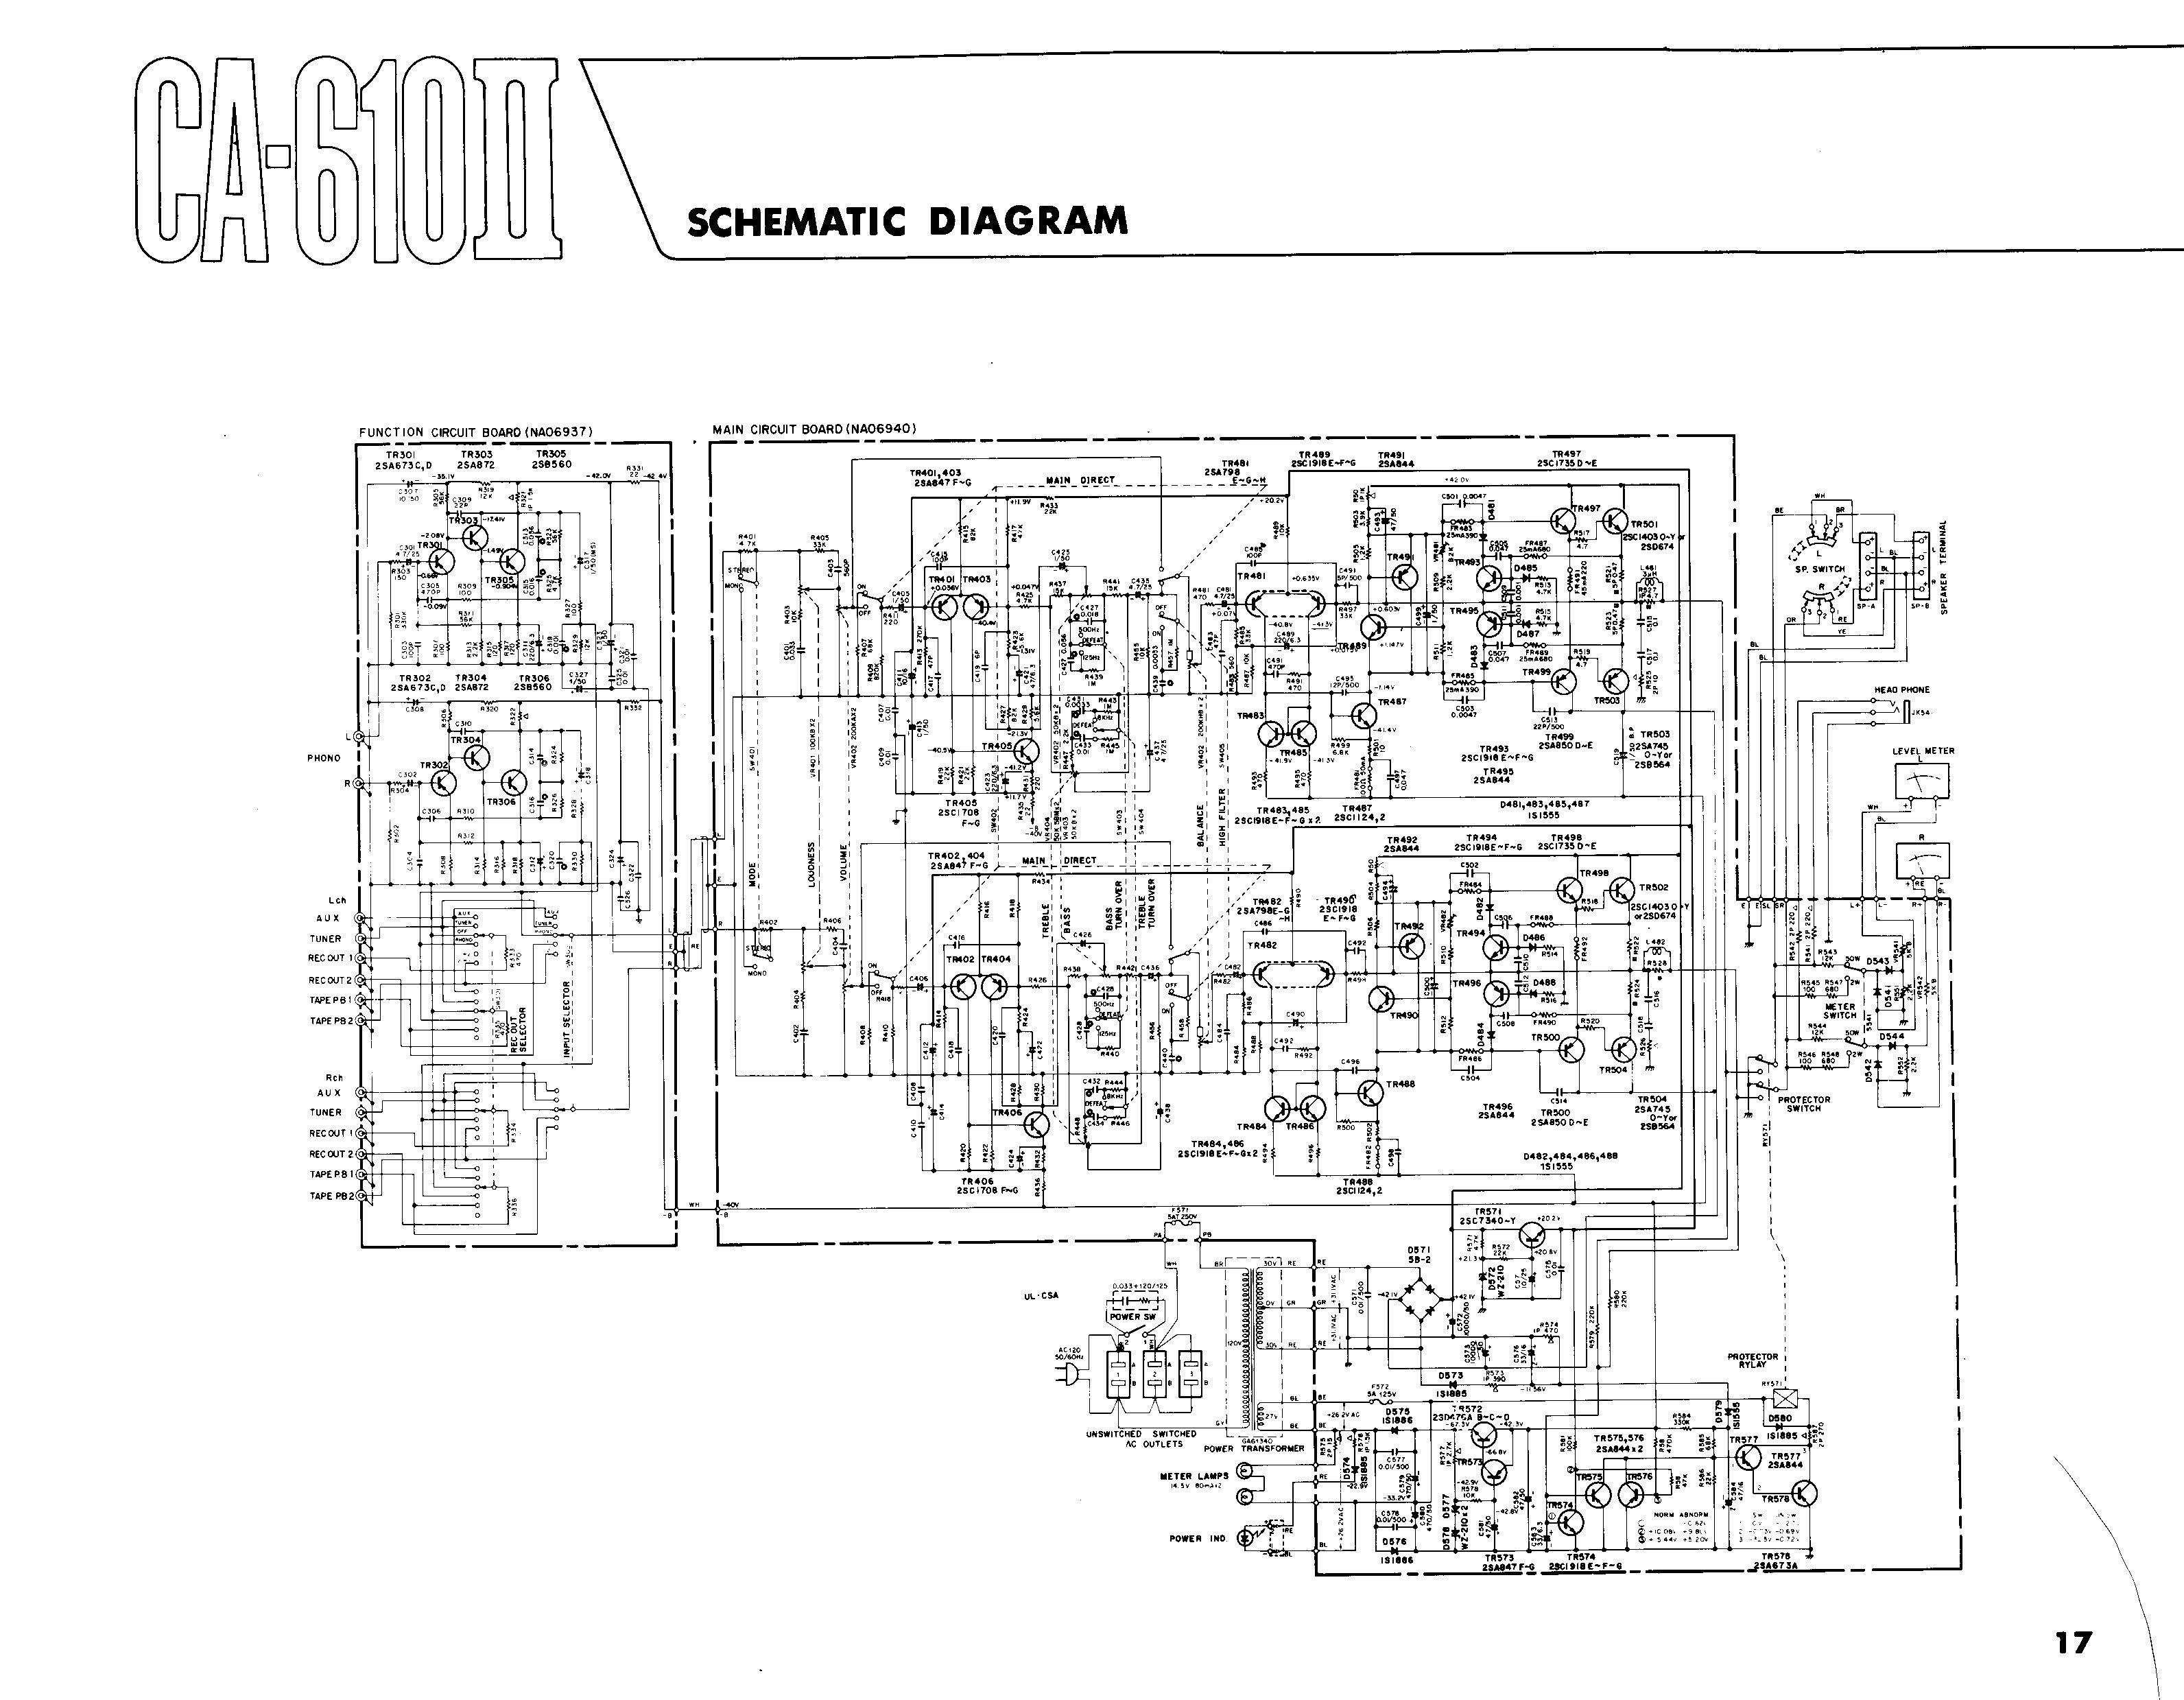 ca 6102ii s index of yamaha yamaha schematic diagram at nearapp.co